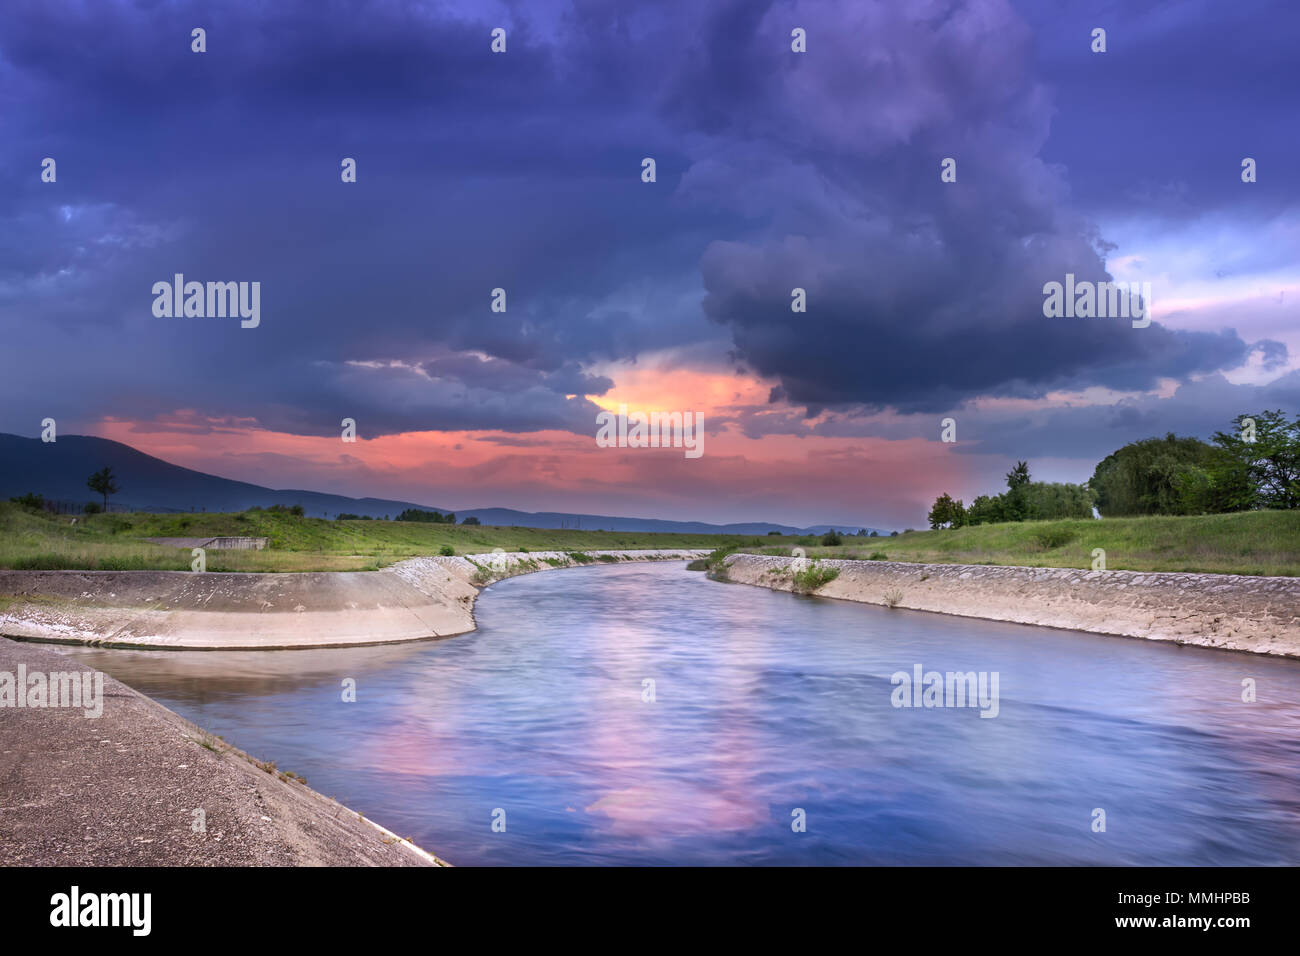 Amazing, dramatic sunset colors and fluffy clouds over reflective, curvy river blue hour composition - Stock Image